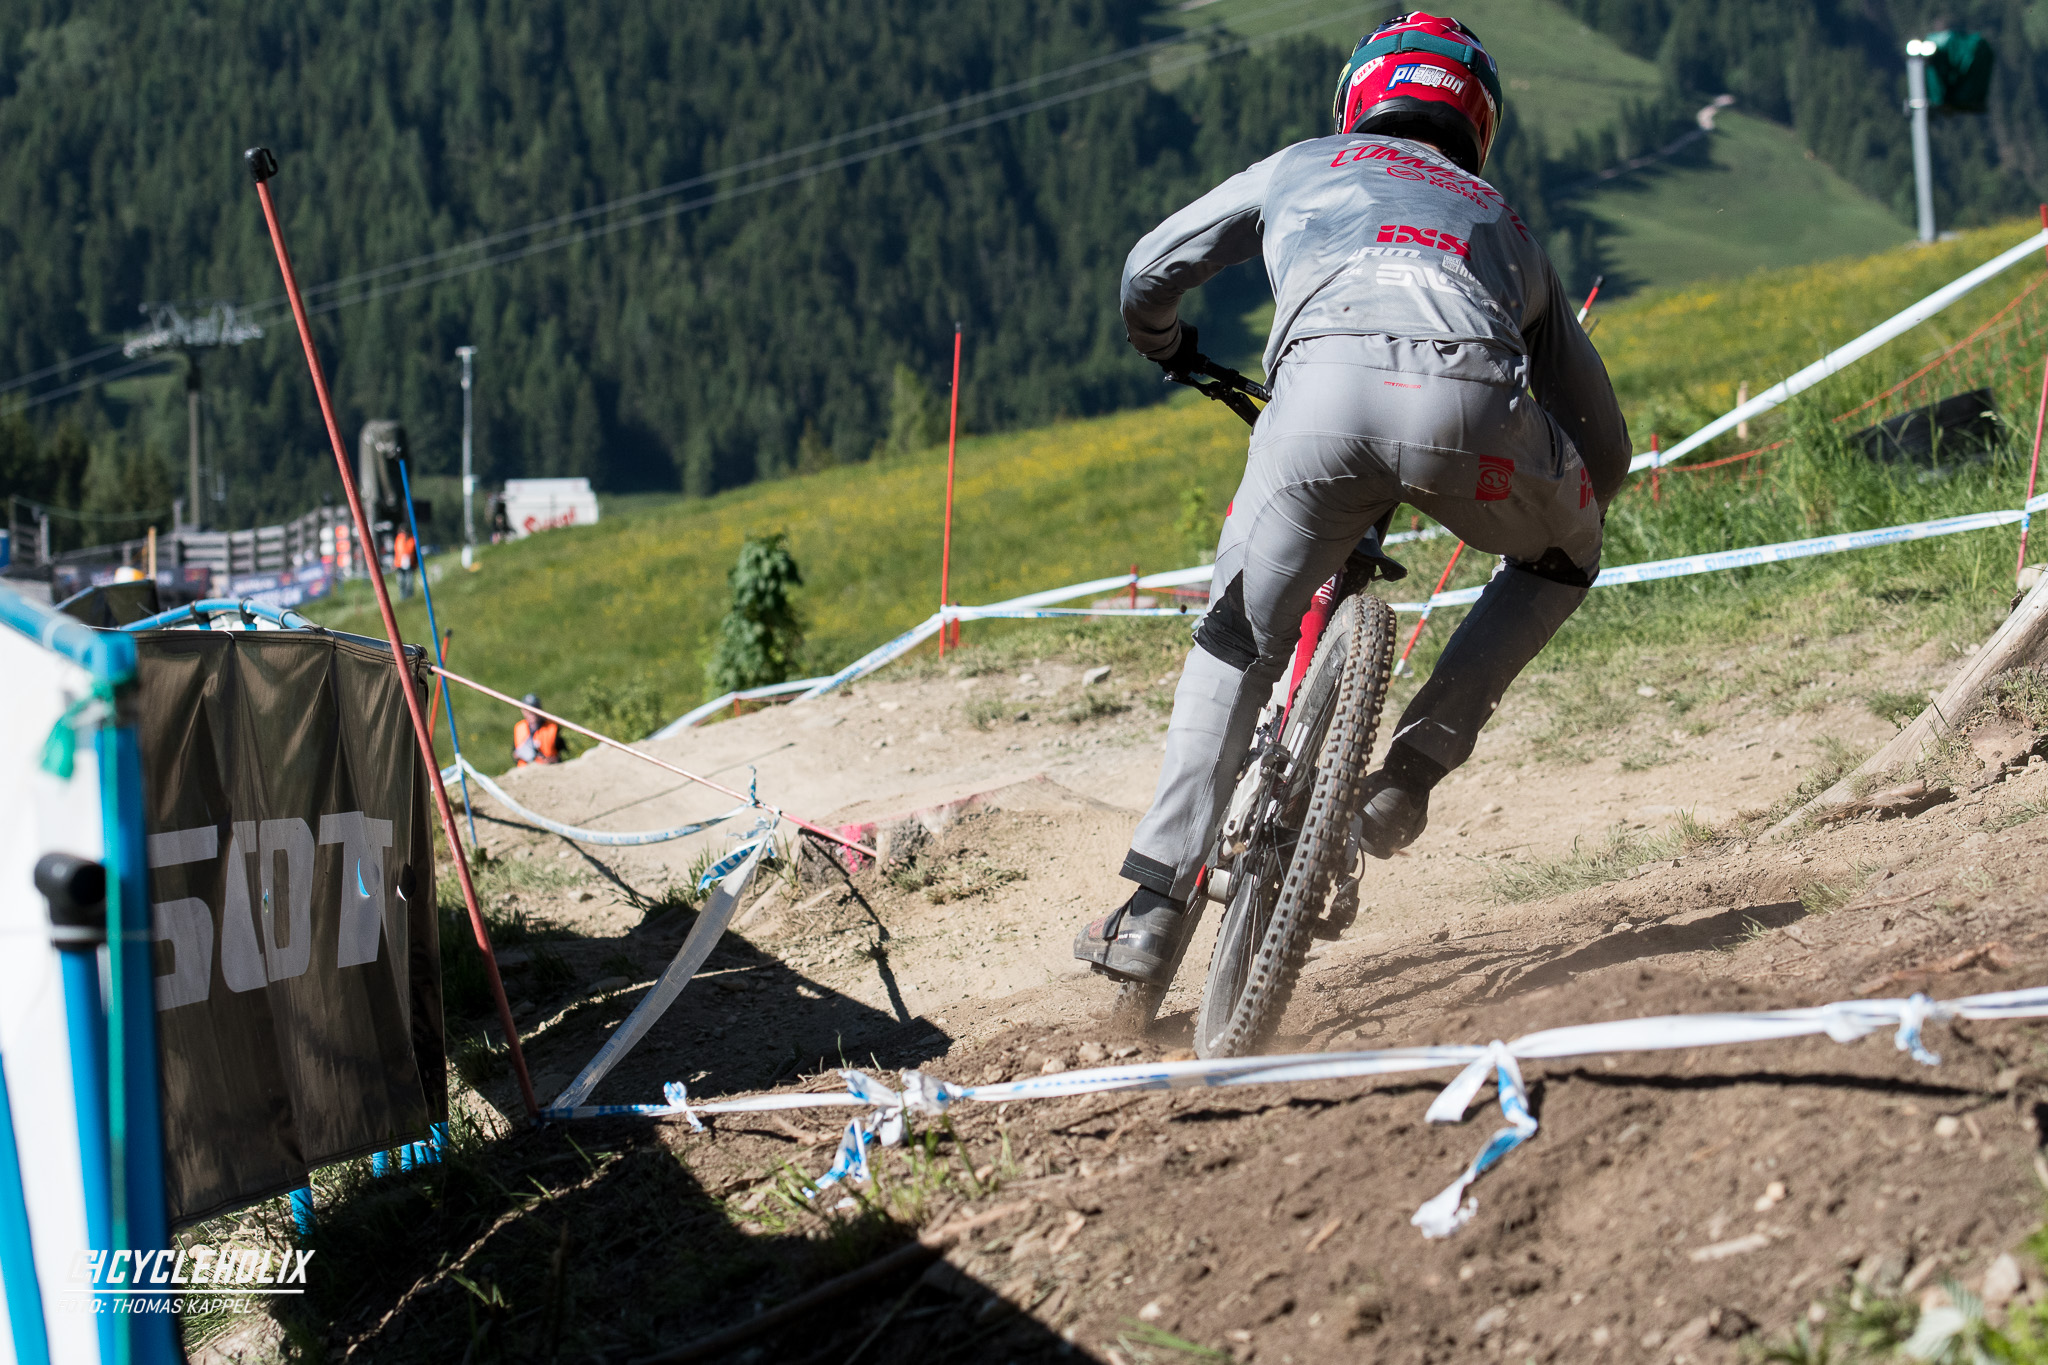 2019 Downhill Worldcup Leogang Finale Action FR 2 Cycleholix